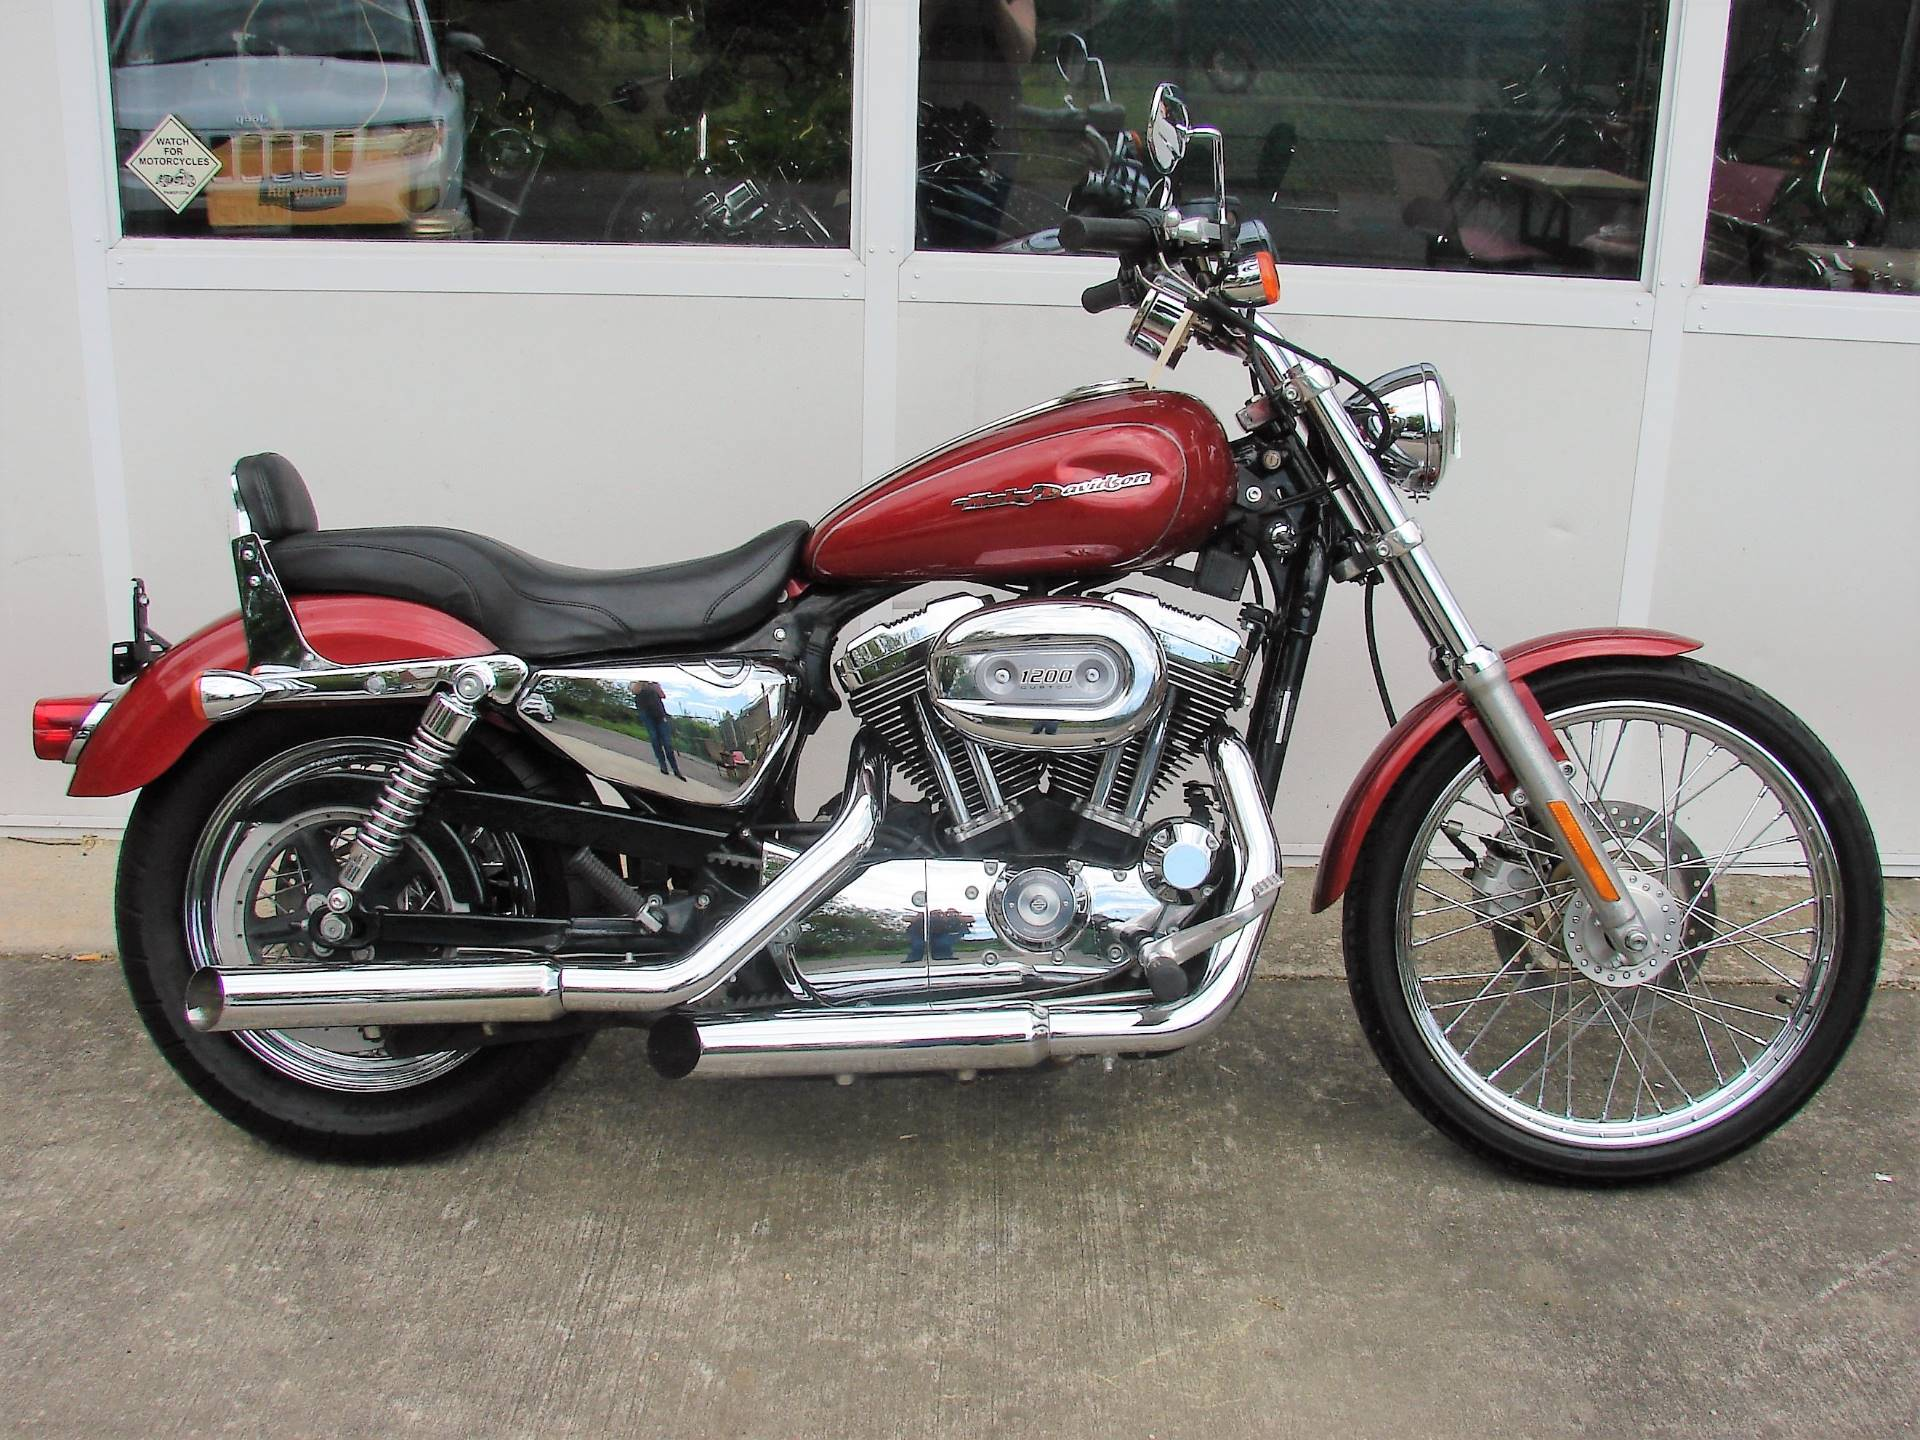 2006 Harley-Davidson XL 1200C Sportster Custom in Williamstown, New Jersey - Photo 9